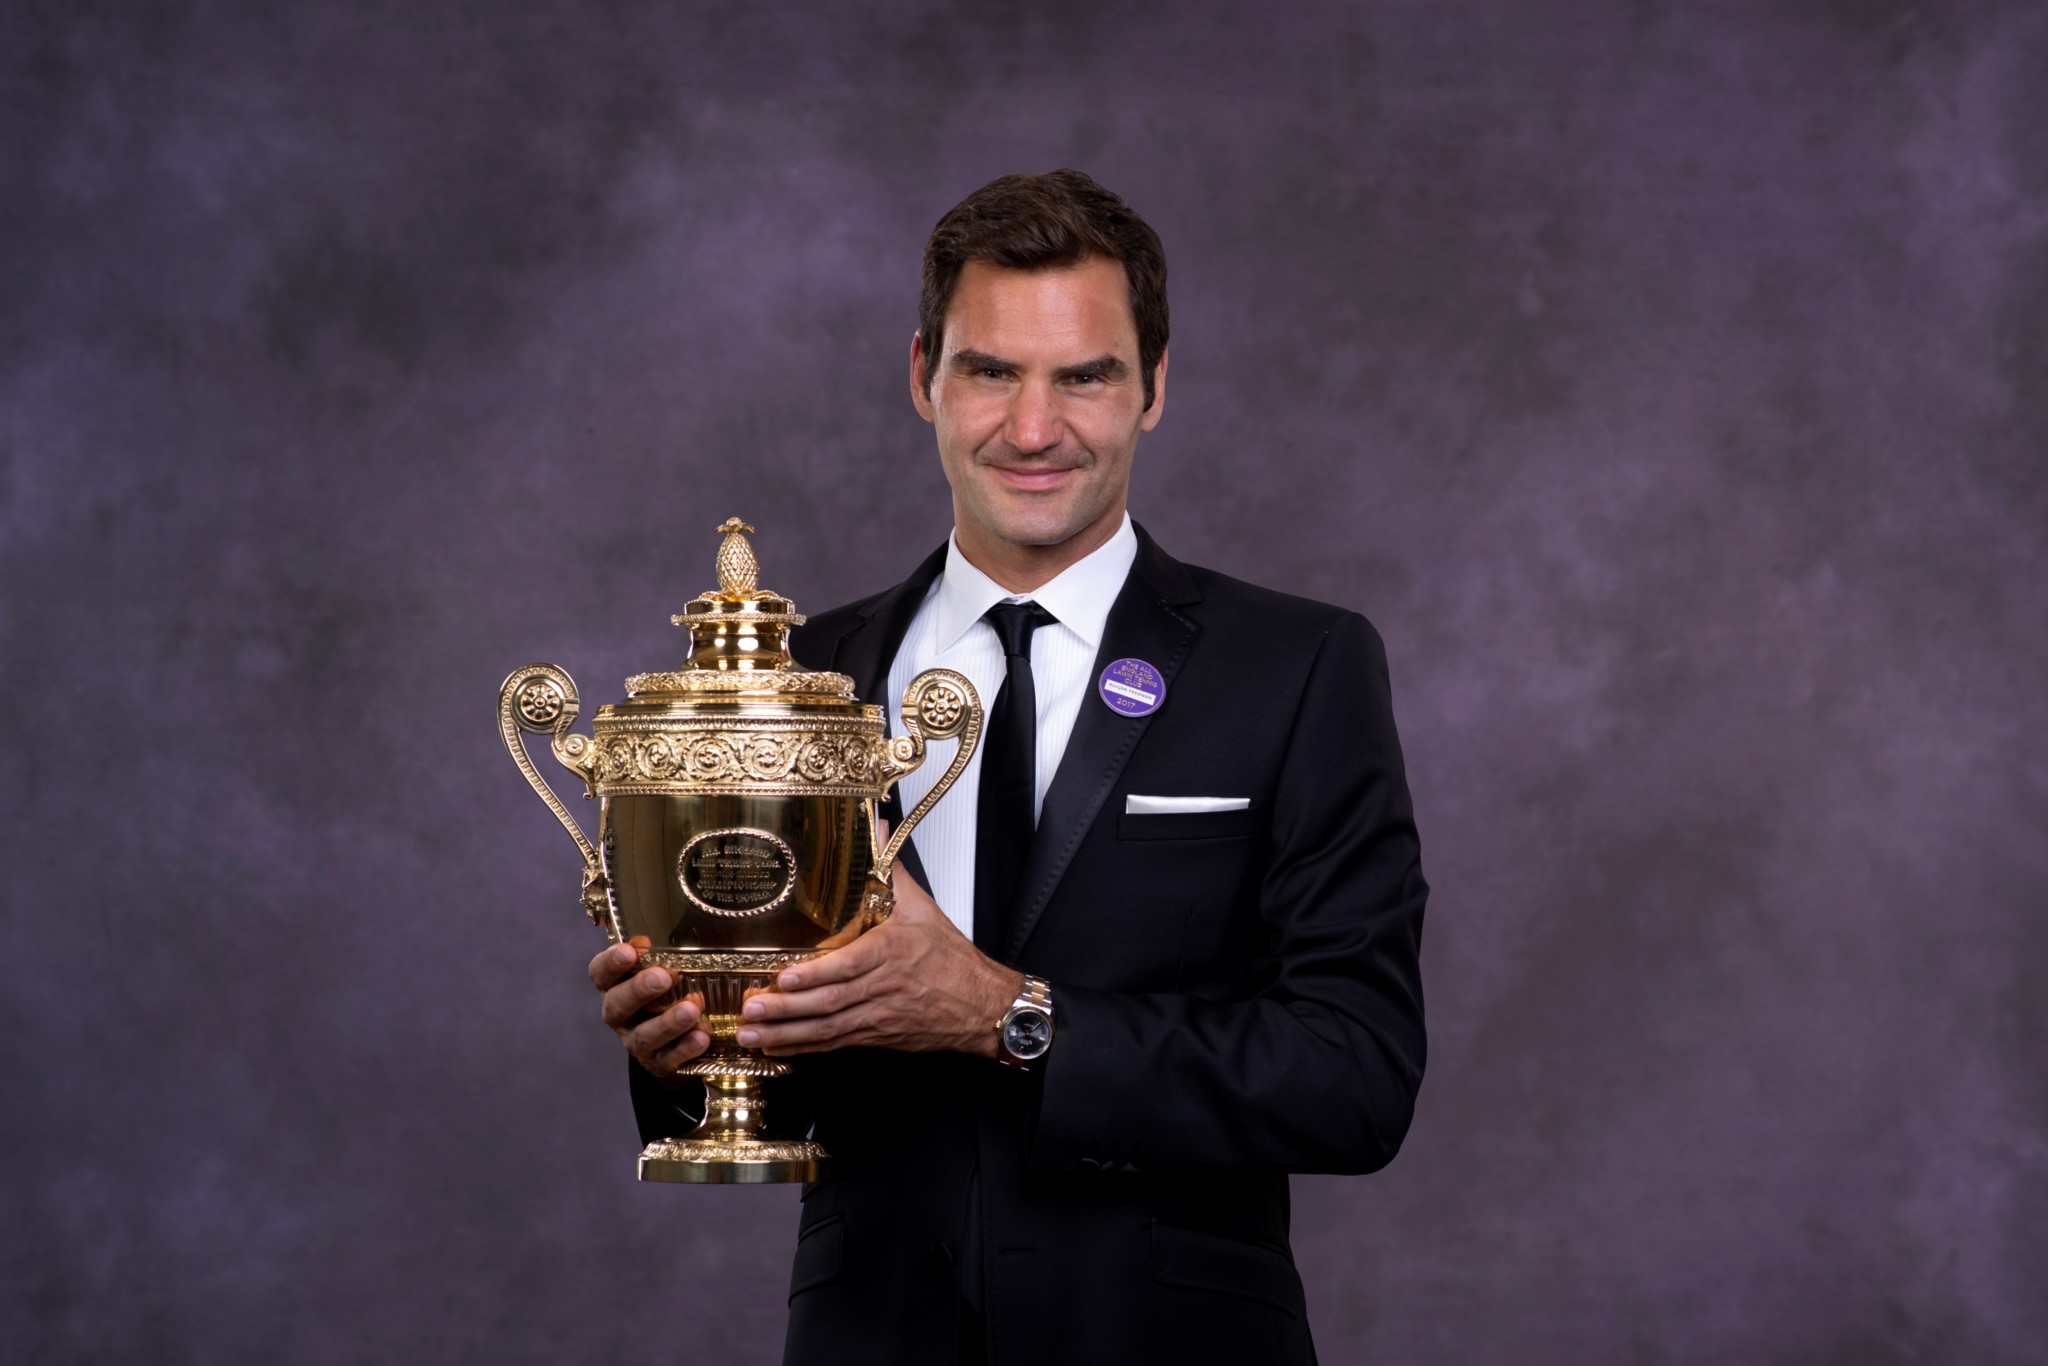 Roger Federer poses with the trophy at the Wimbledon Winners Dinner. (Photo by AELTC - Pool / Getty Images)